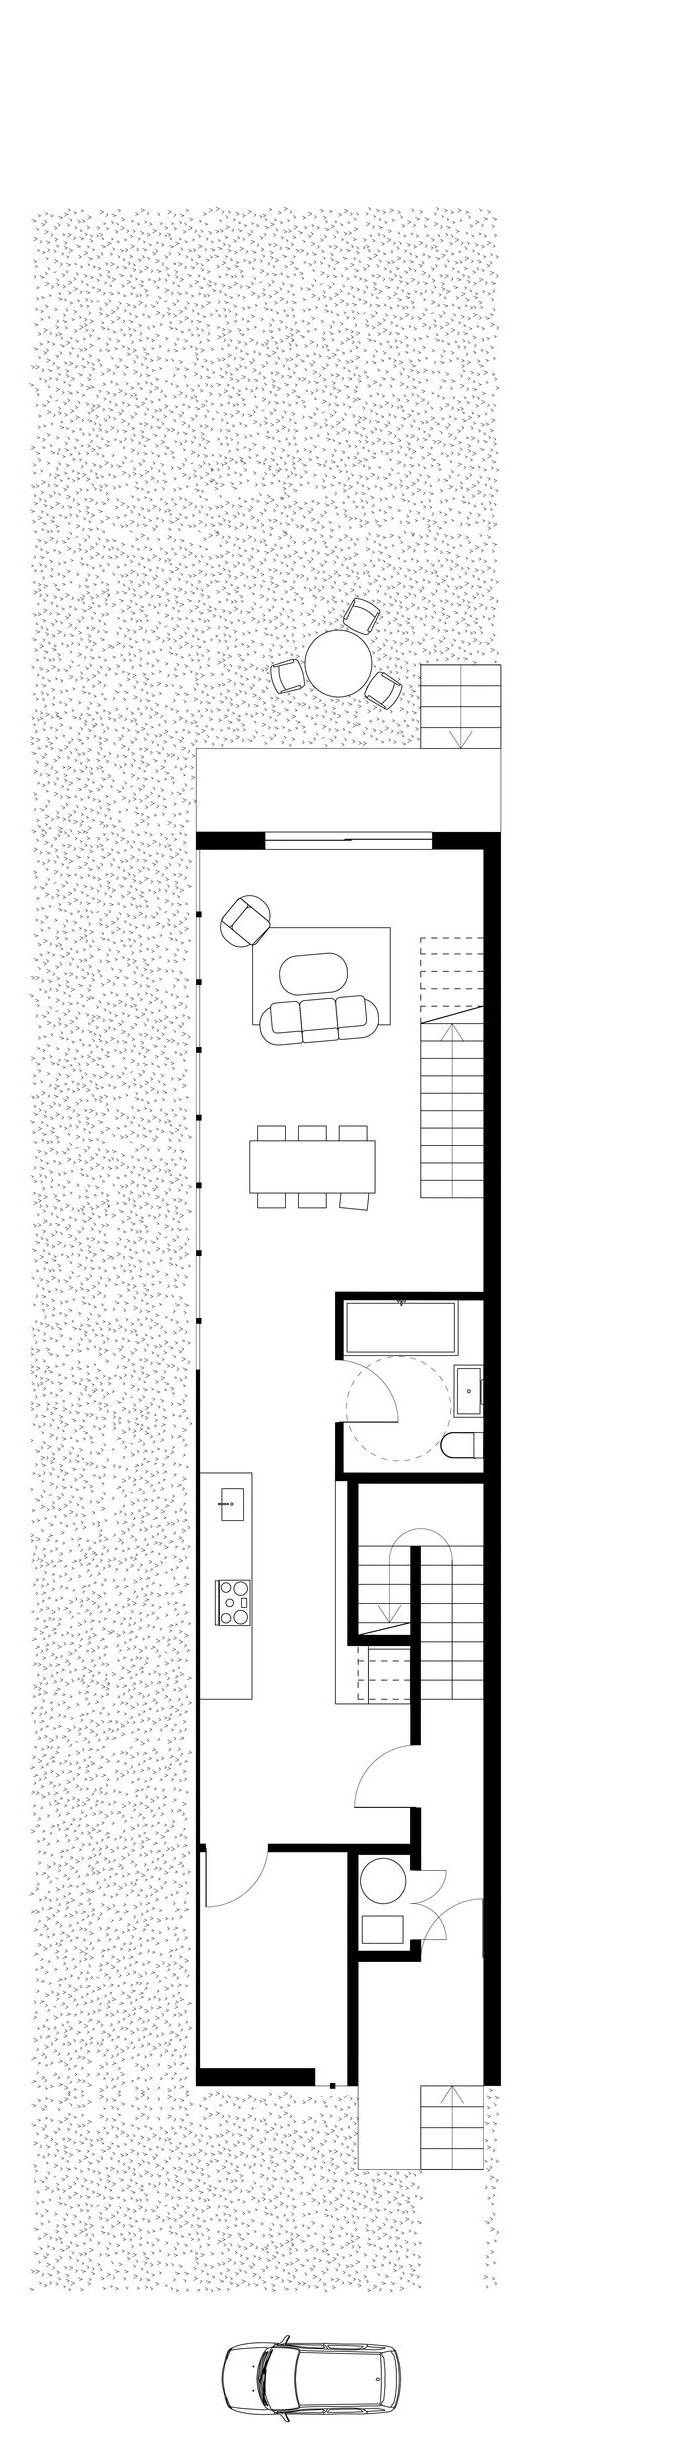 //Narrow Multi-Family Dwelling //2018 // On Hold